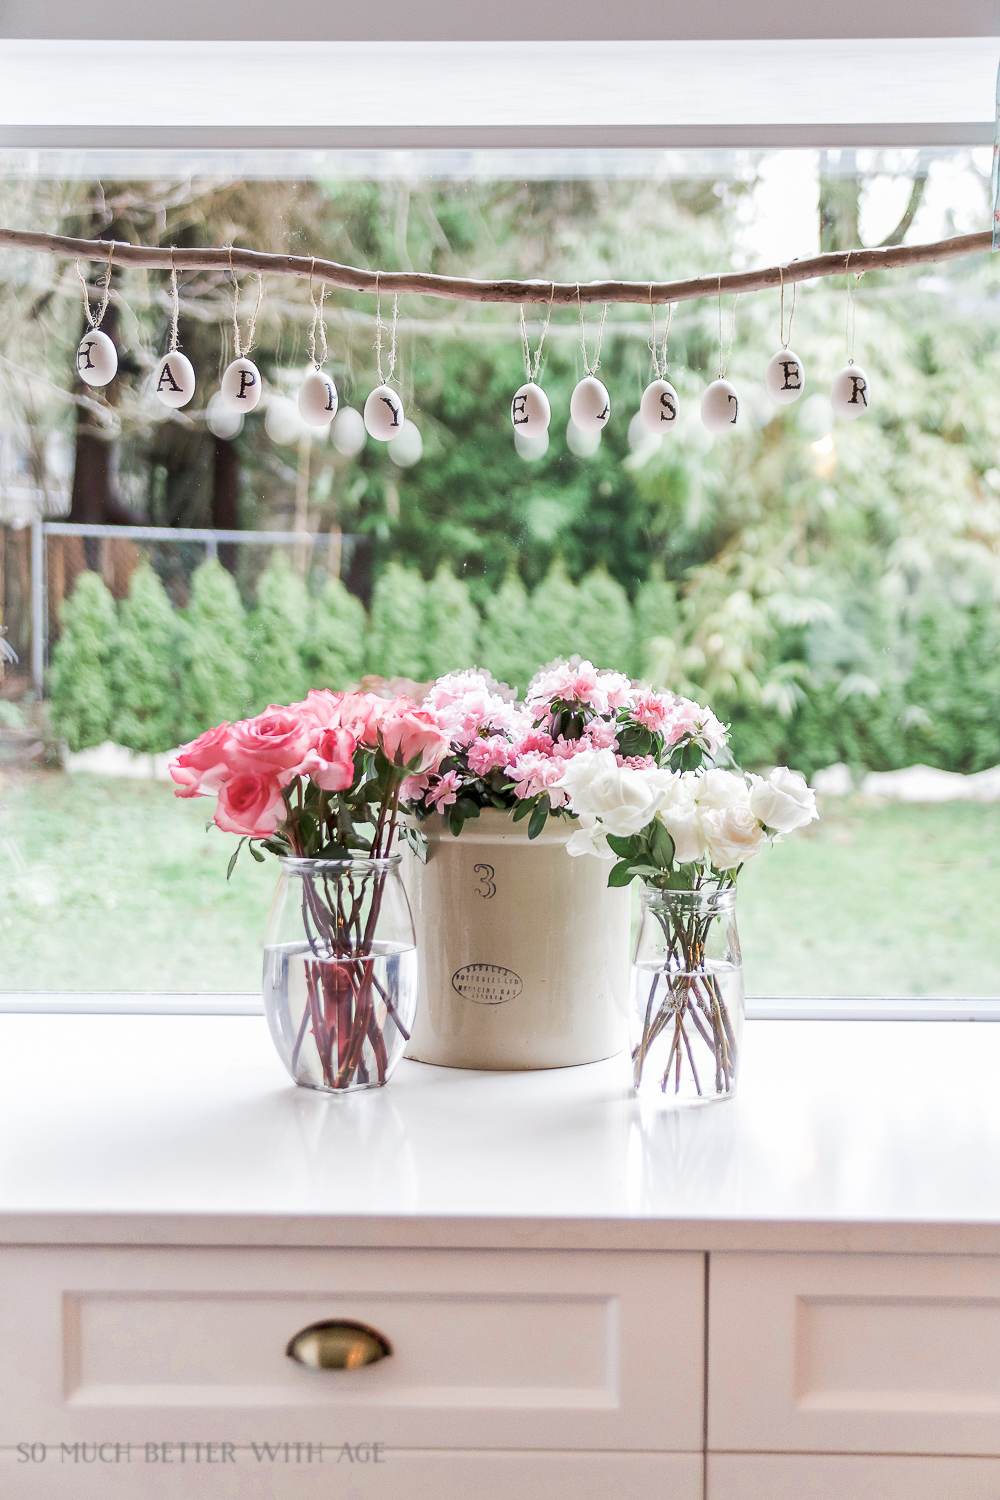 Spring Flower Home Tour + French Bottle Drying Rack Floral Centrepiece - So Much Better With Age